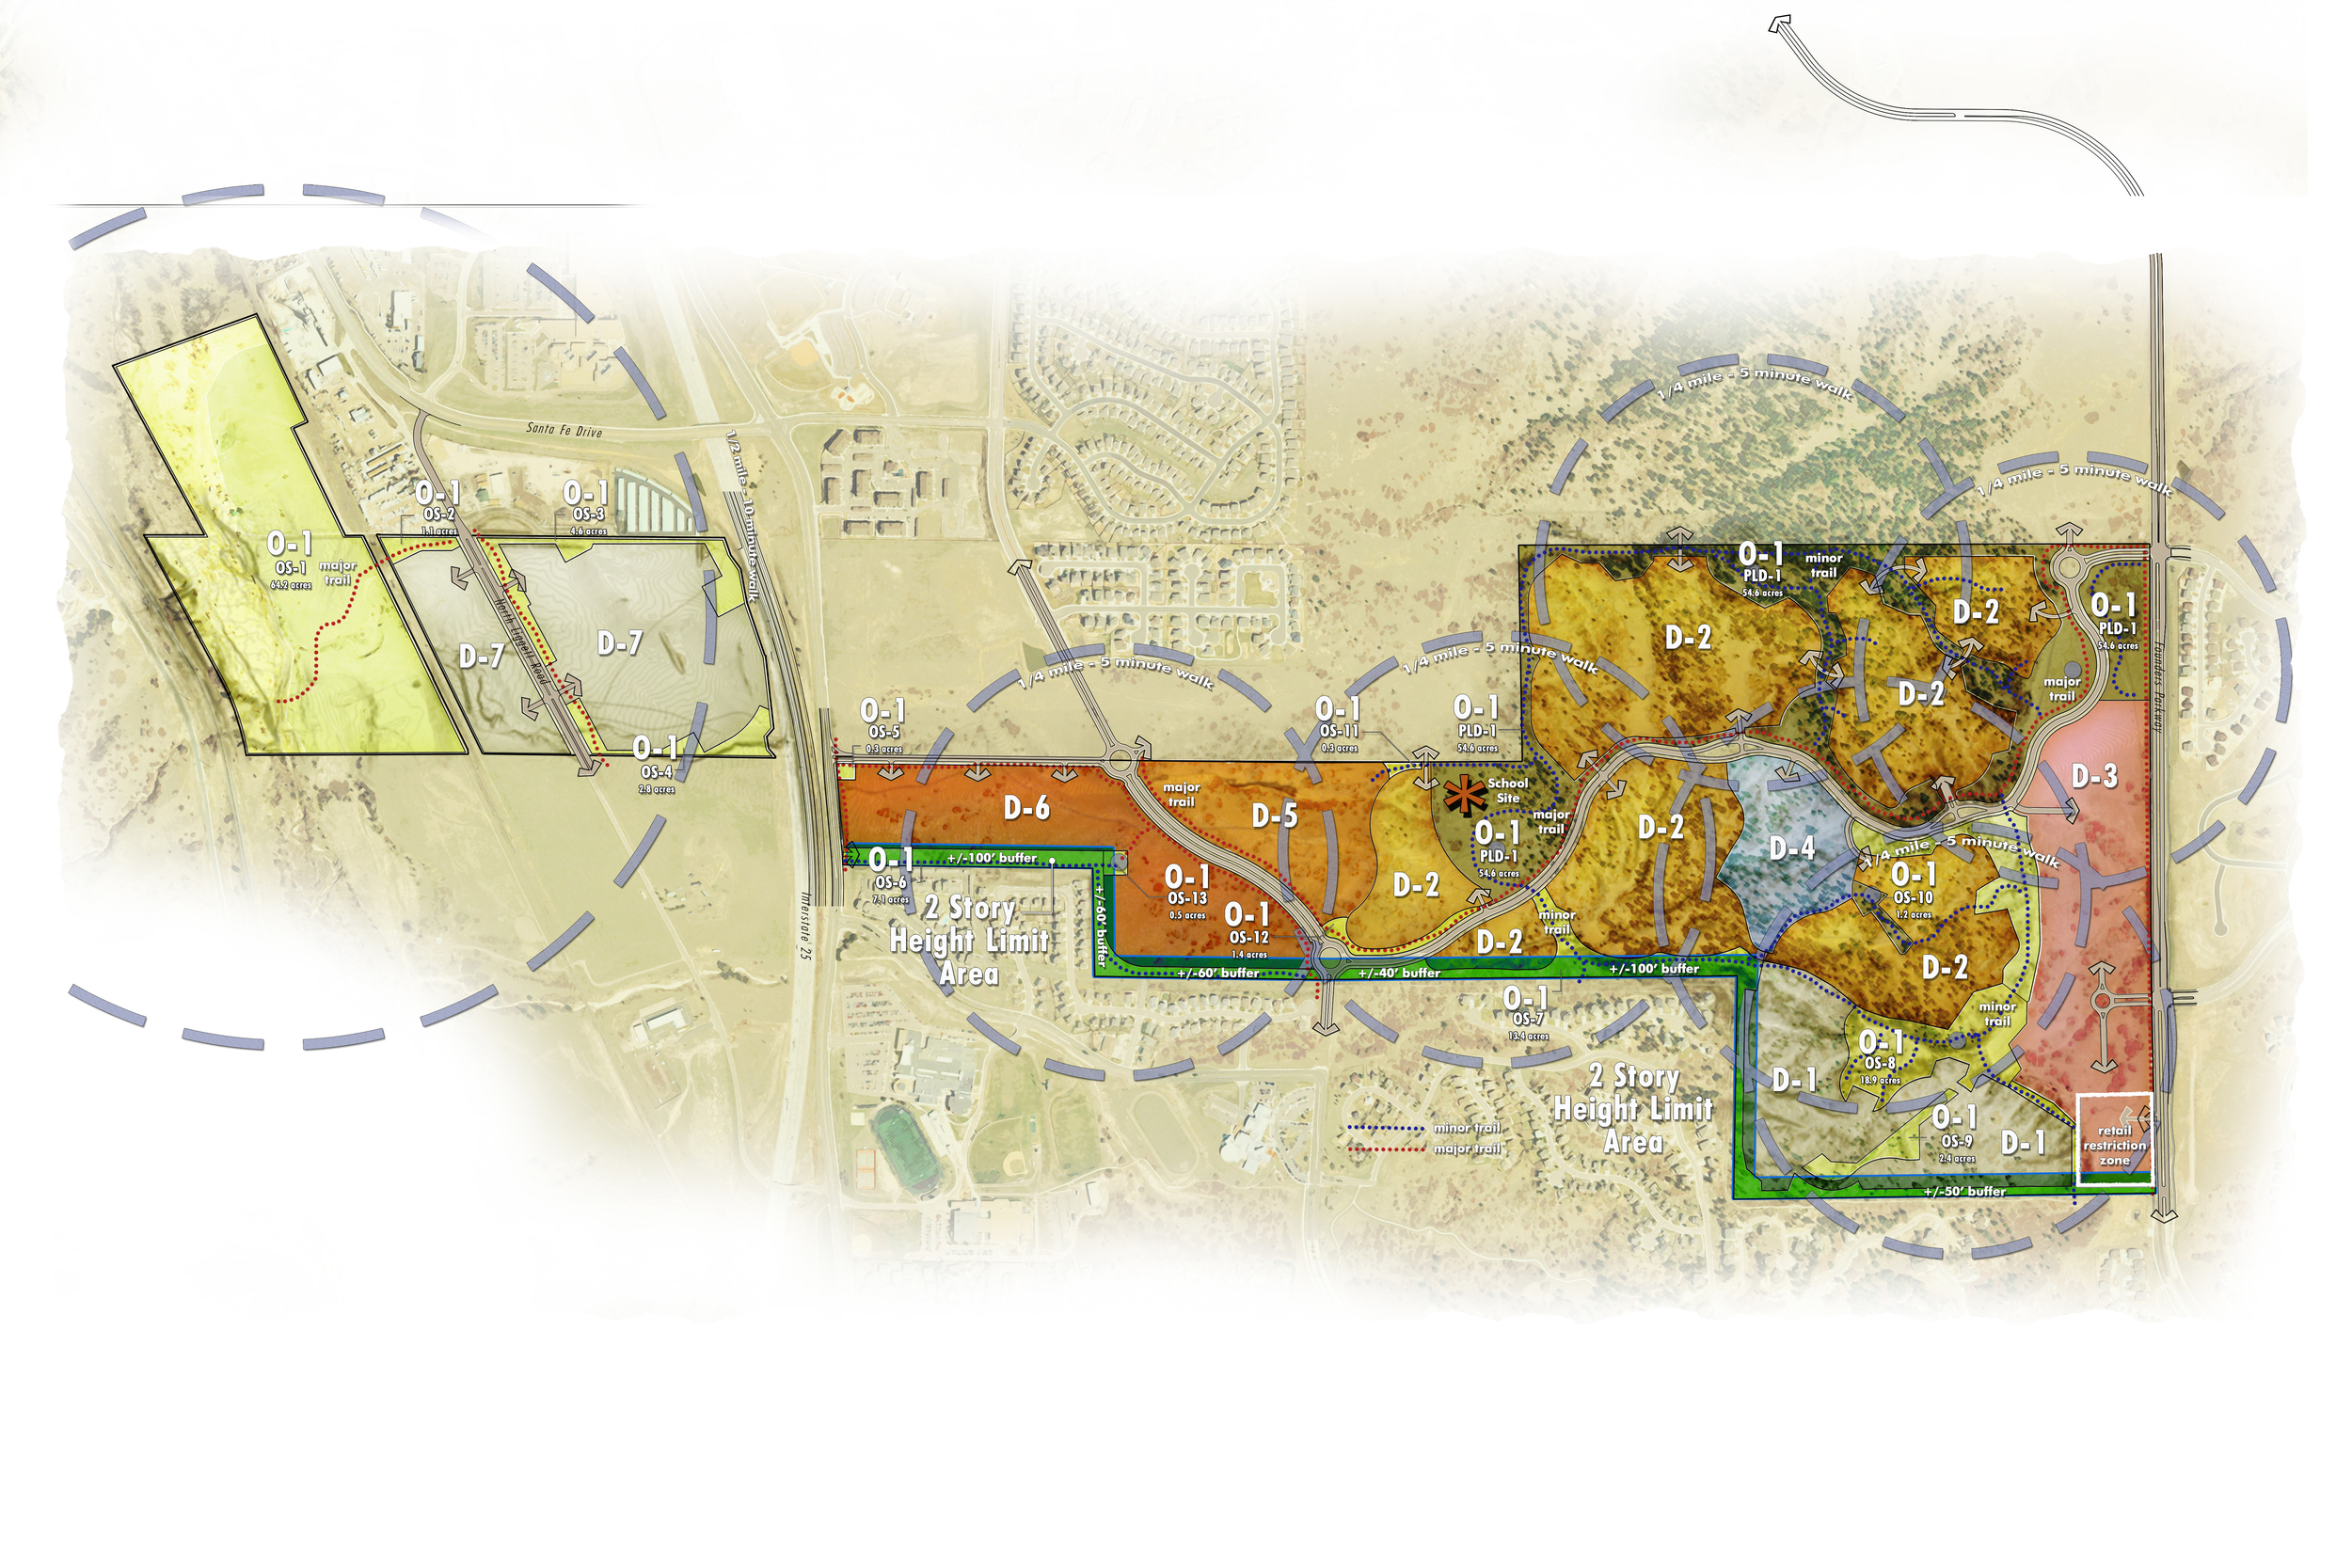 Planning Concept-13 200 scale -Zoning.jpg